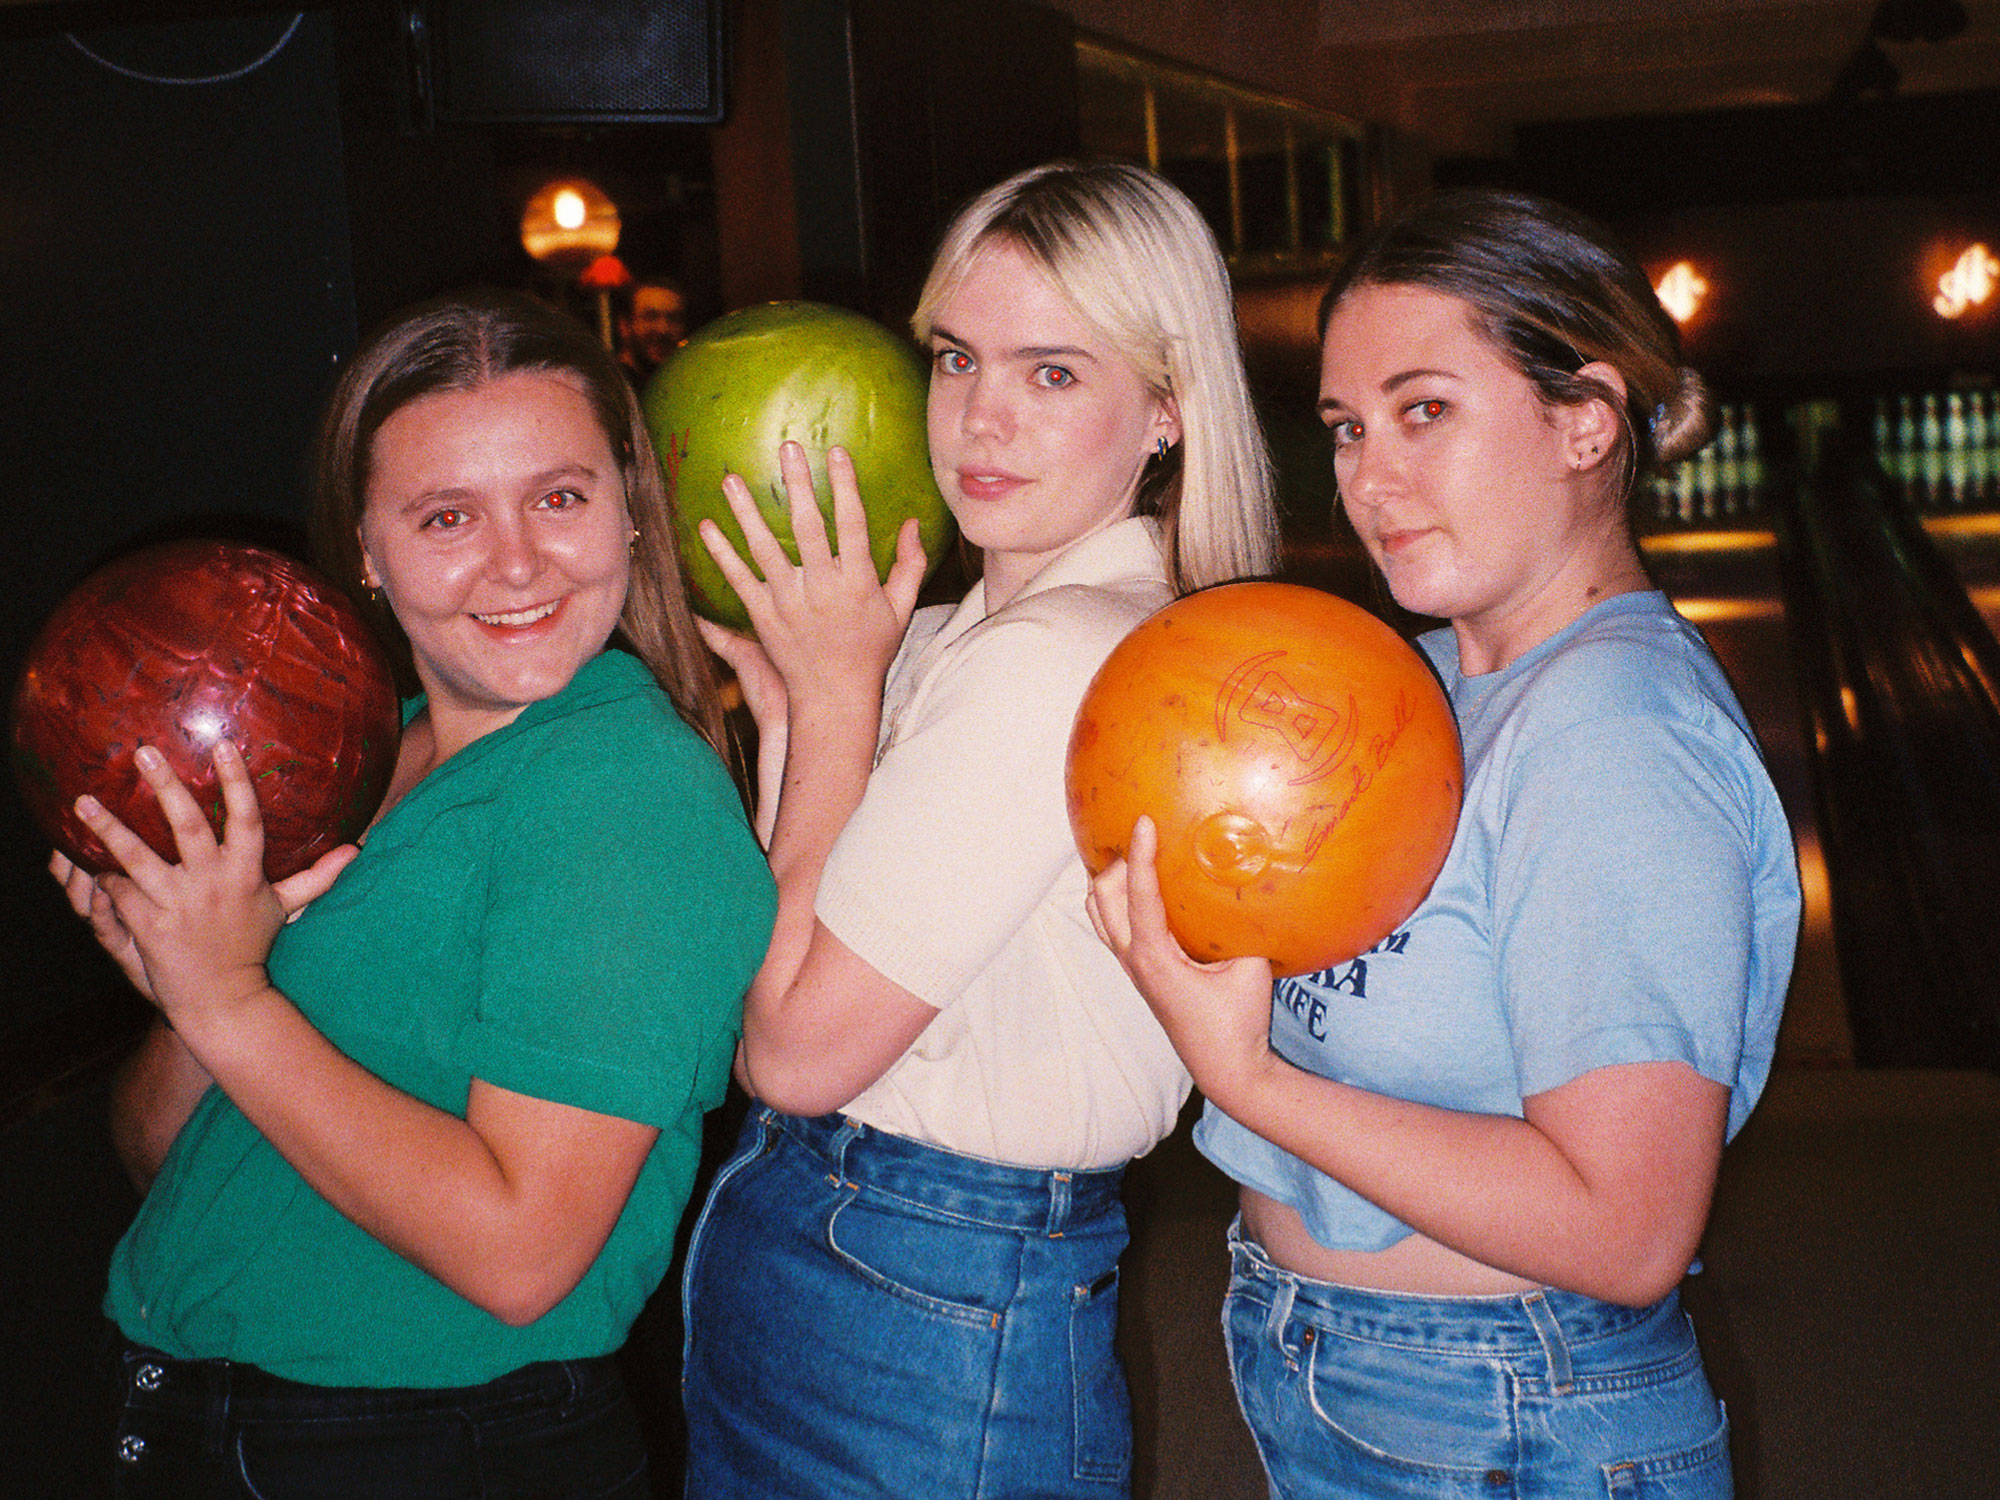 Three friends smiling and holding bowling balls